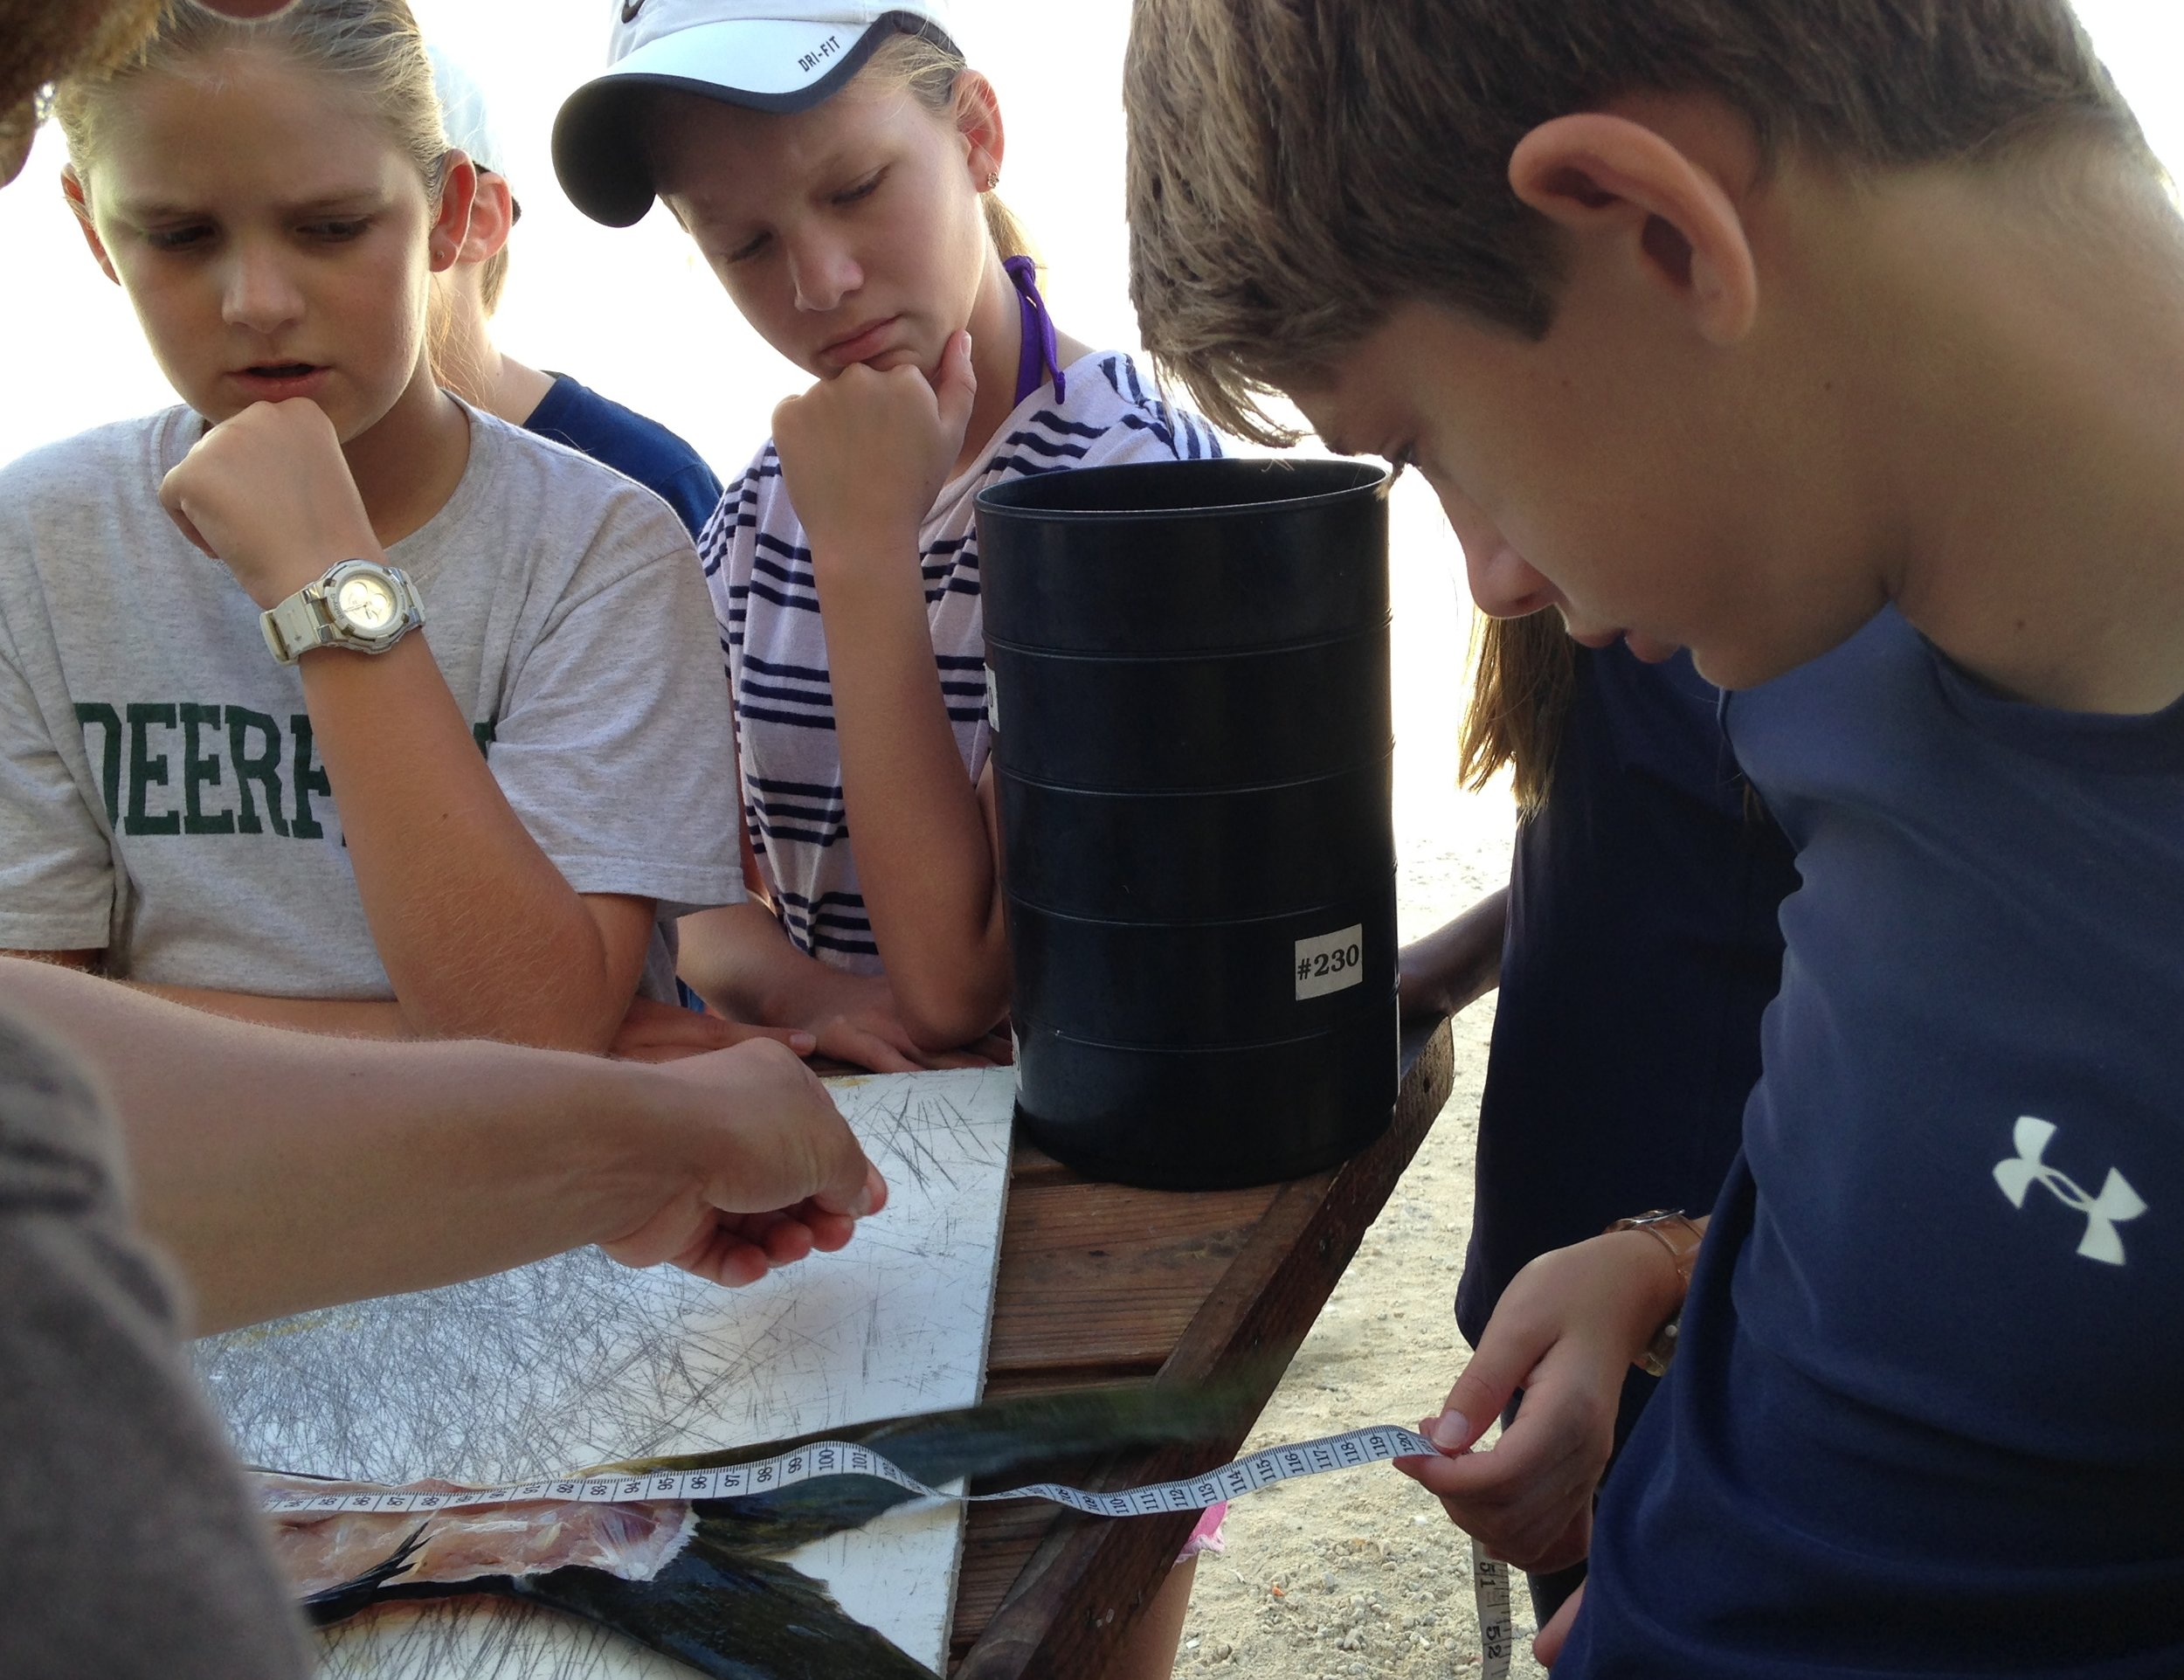 Students engaged in plastic pollution research getting up close with a mahi mahi dissection